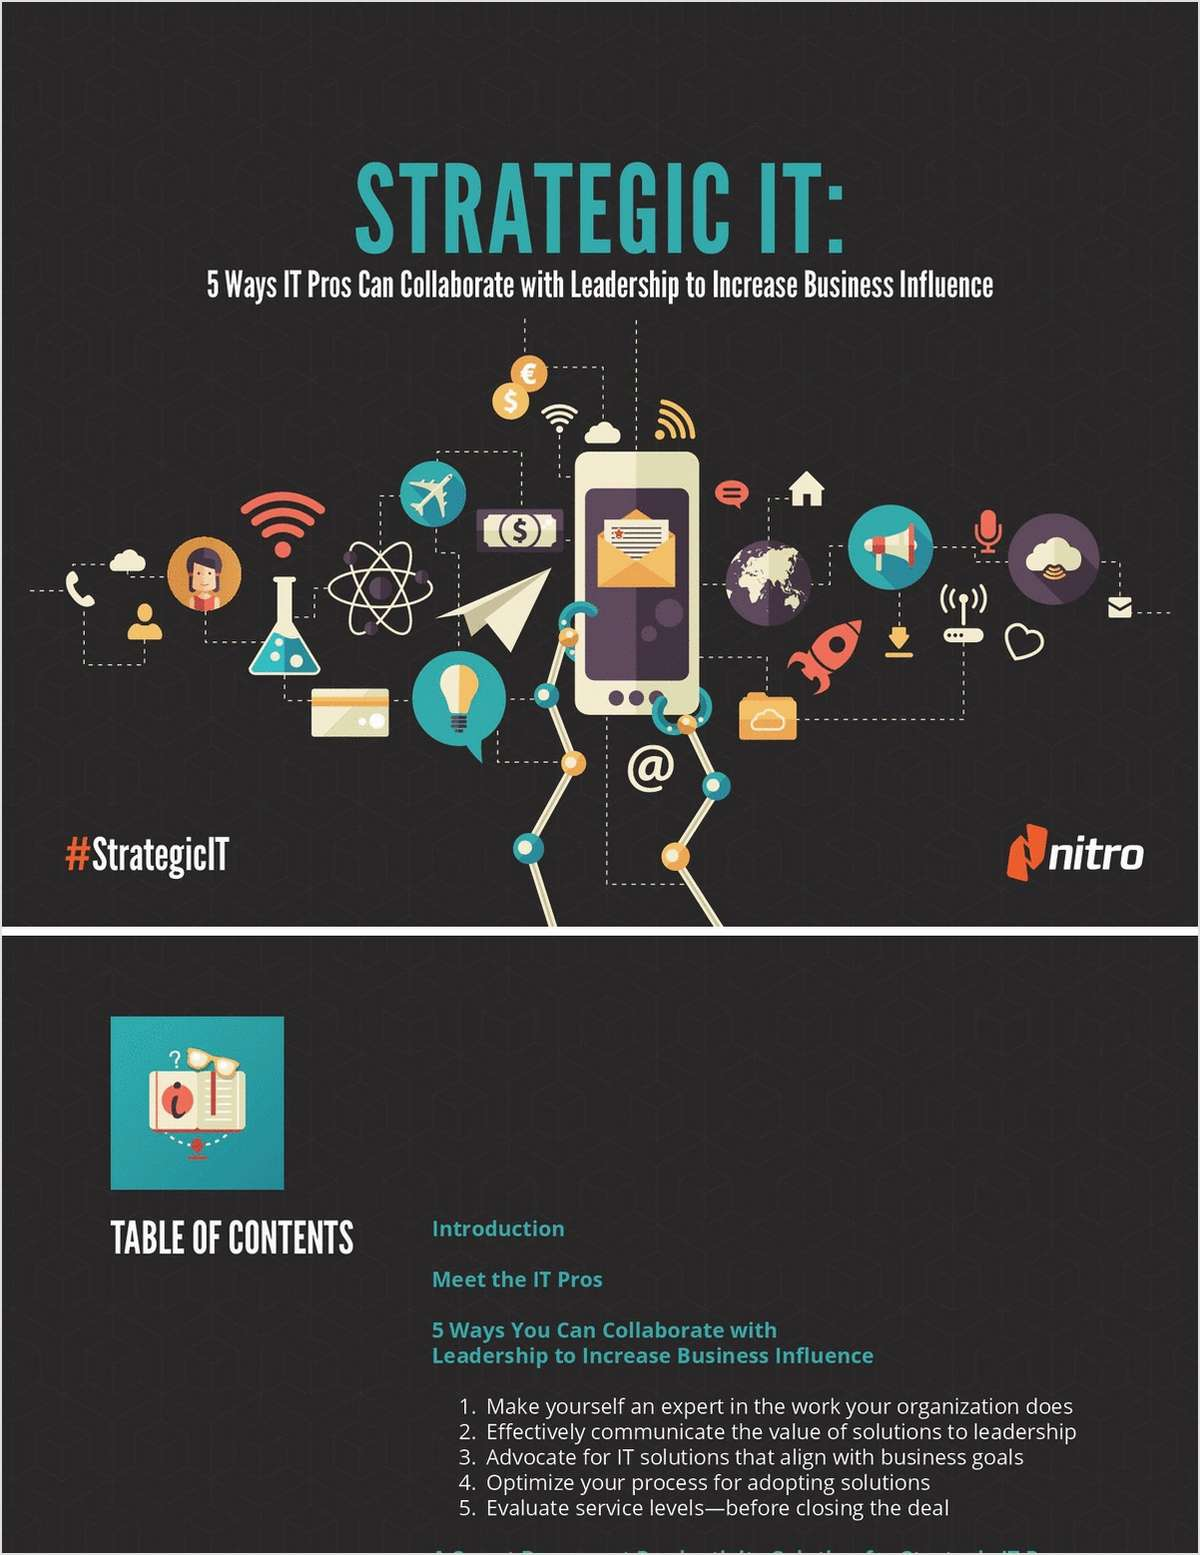 Strategic IT: 5 Ways IT Pros Can Collaborate with Leadership to Increase Business Influence